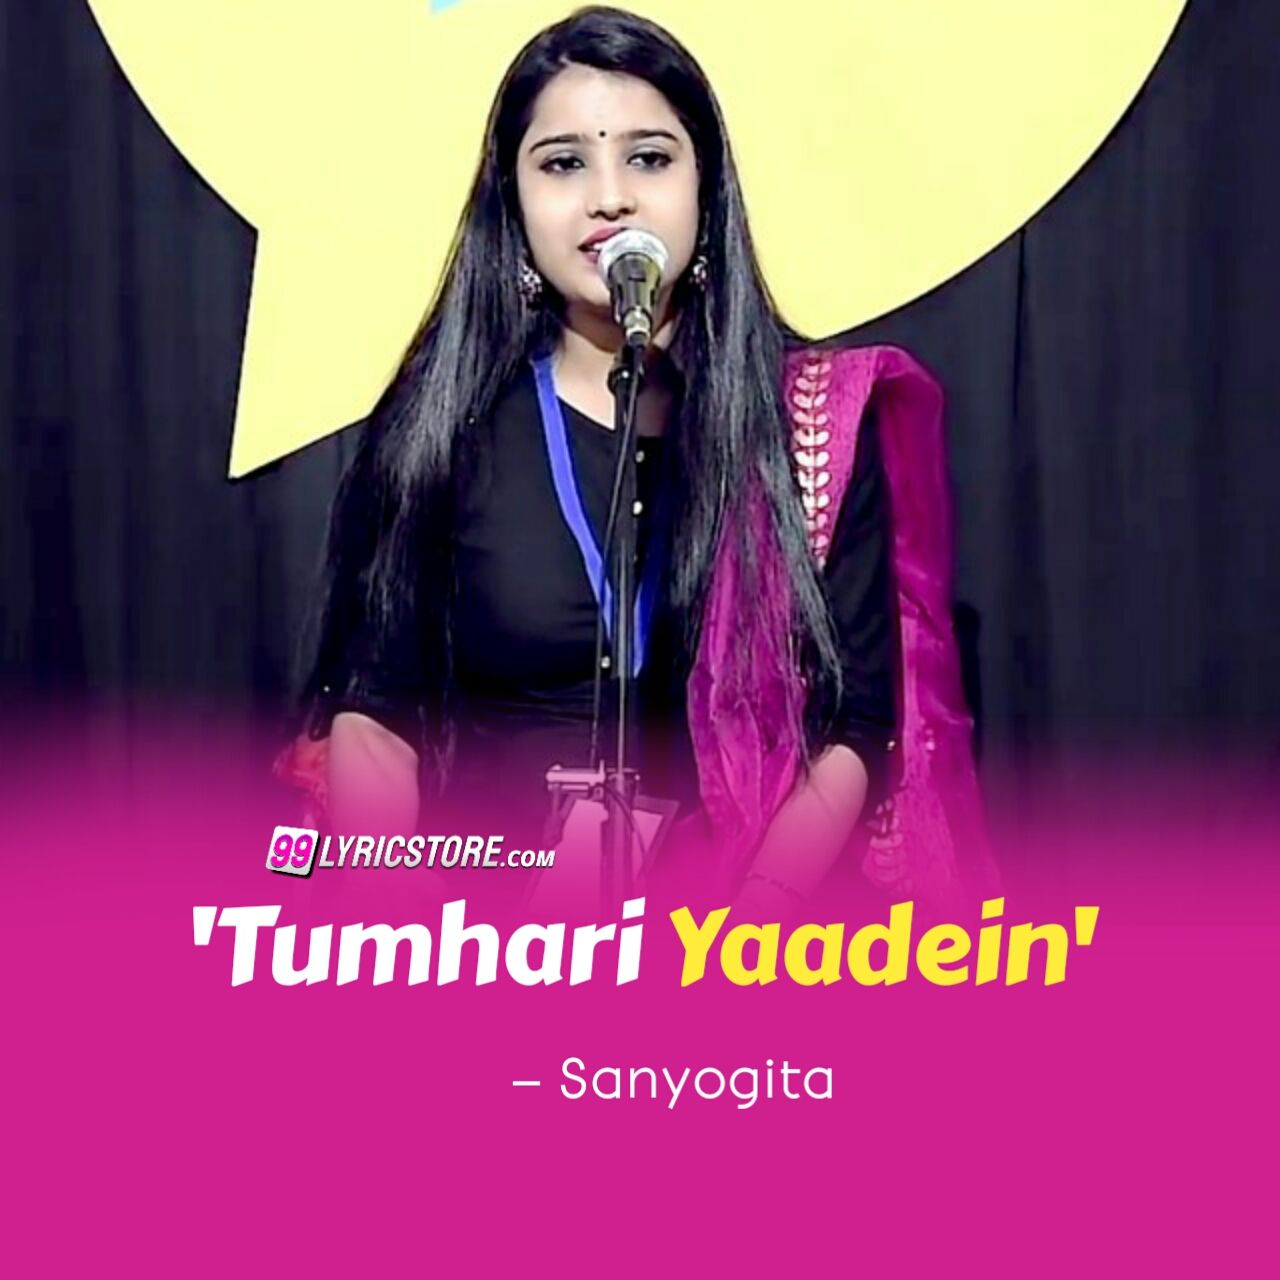 'Tumhari Yaadein' Poetry has written and performed by sanyogita on the social house's plateform.